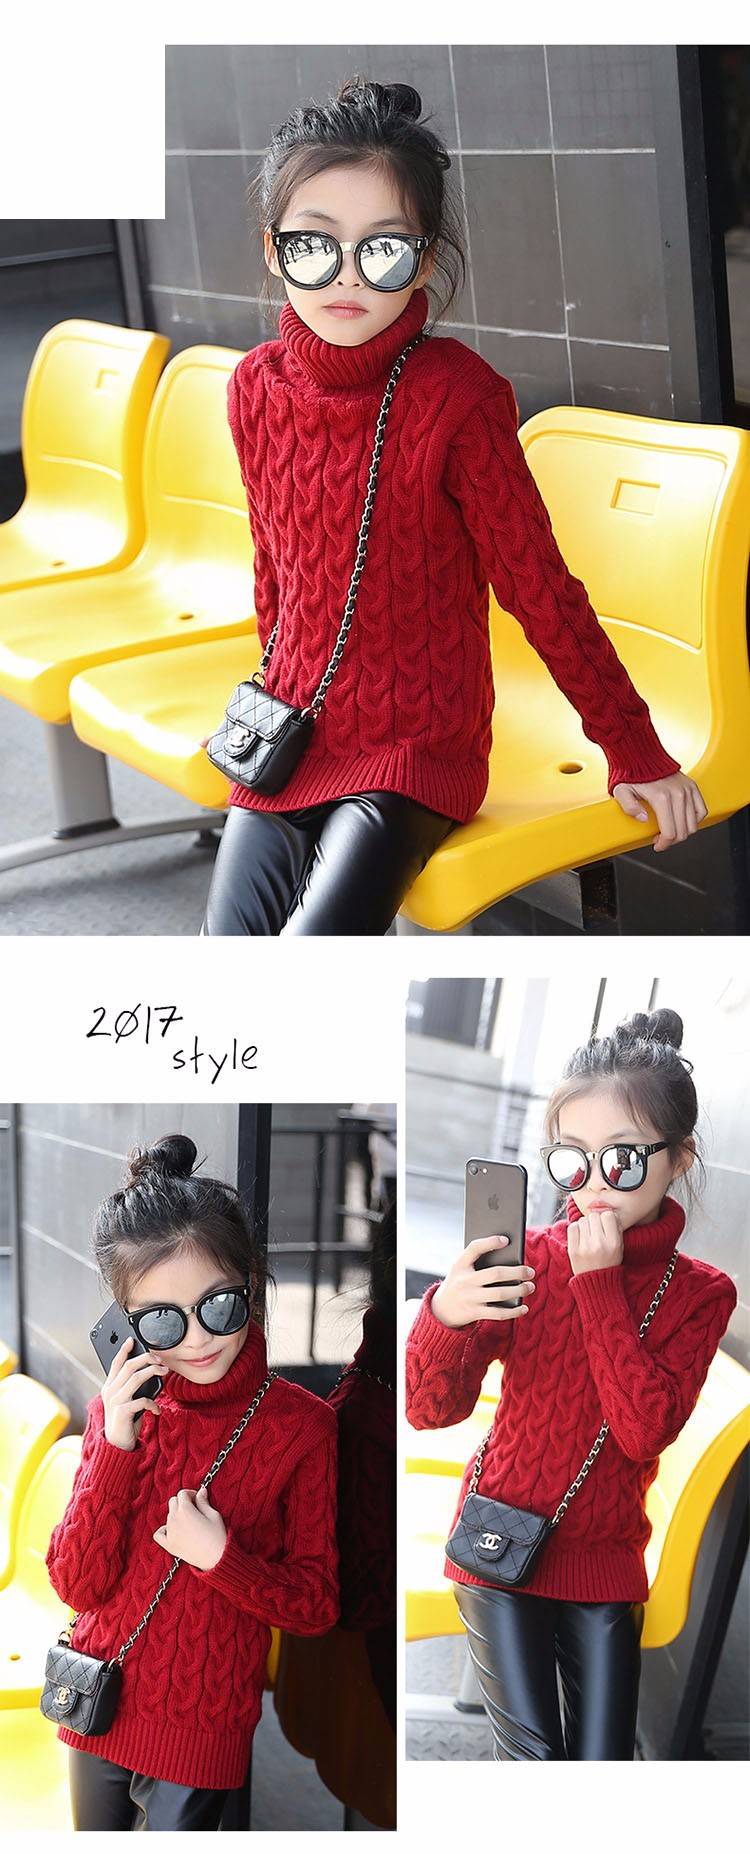 2017 new high neck long knitting girls sweater spring autumn winter turtleneck knitted children sweaters kids girls thick red black beige pink tops 7 8 9 10 11 12 13 14 15 years little big teenage girls sweater winter casual children (9)